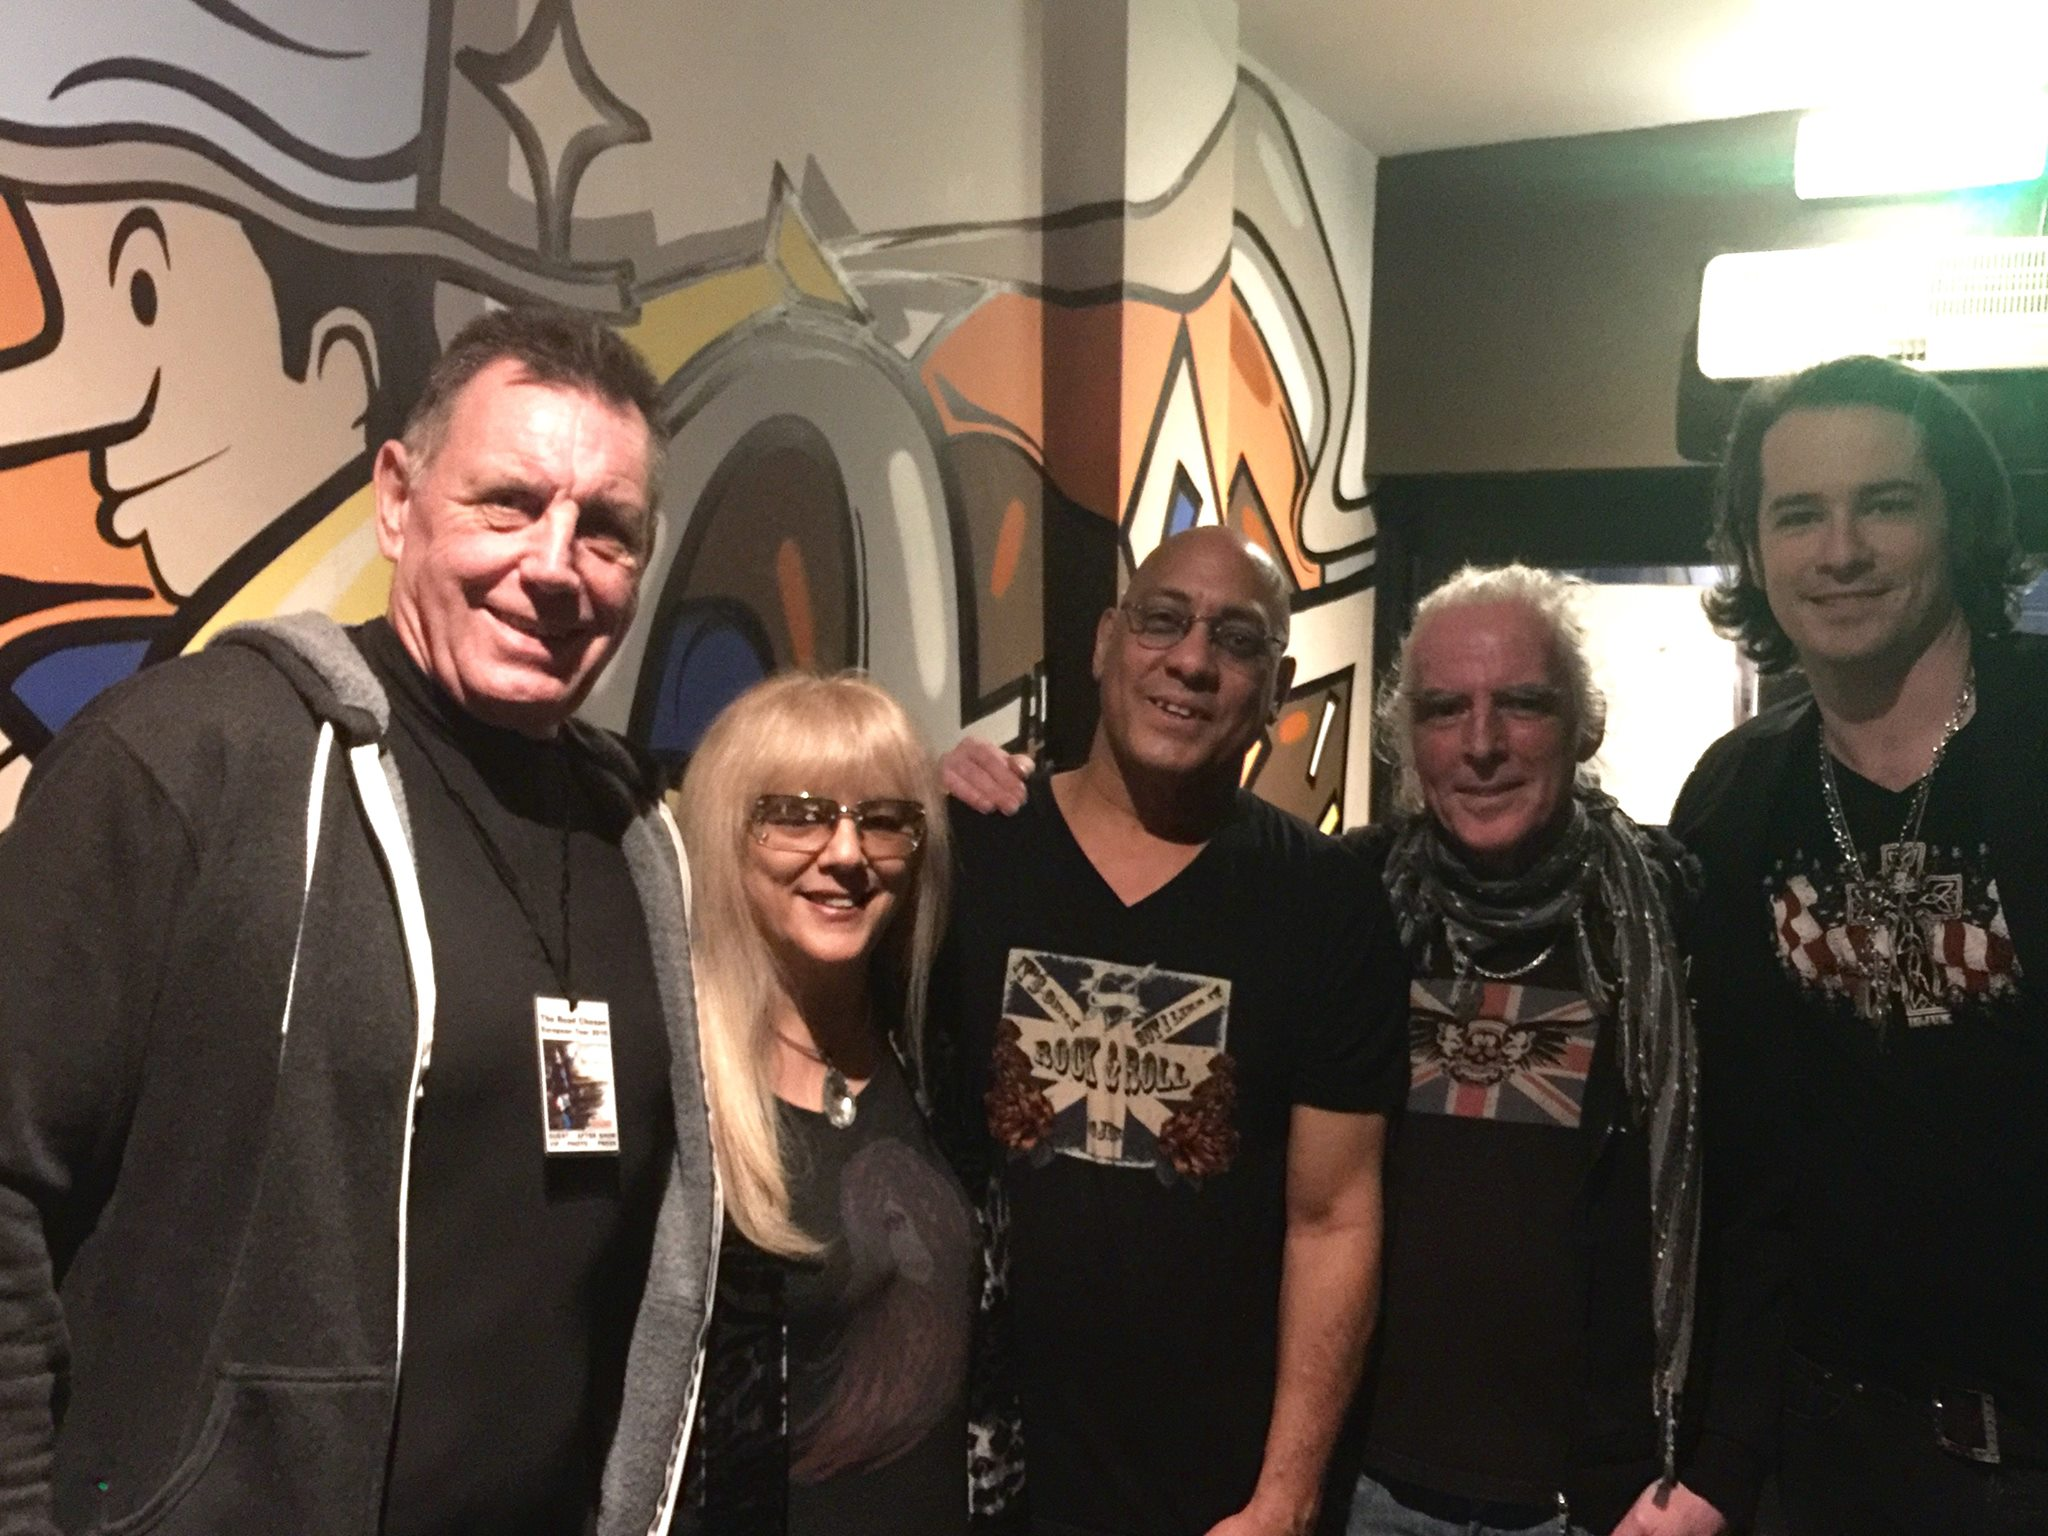 How many ICJUK designs can you see here?! Super lovely to receive this photo this evening from Ryan McGarvy - from left to right My Dad, My Mum, My Bridesmaid aka Carmine Rojas, Manni (Tour Manager) and Ryan after their show tonight in the UK!